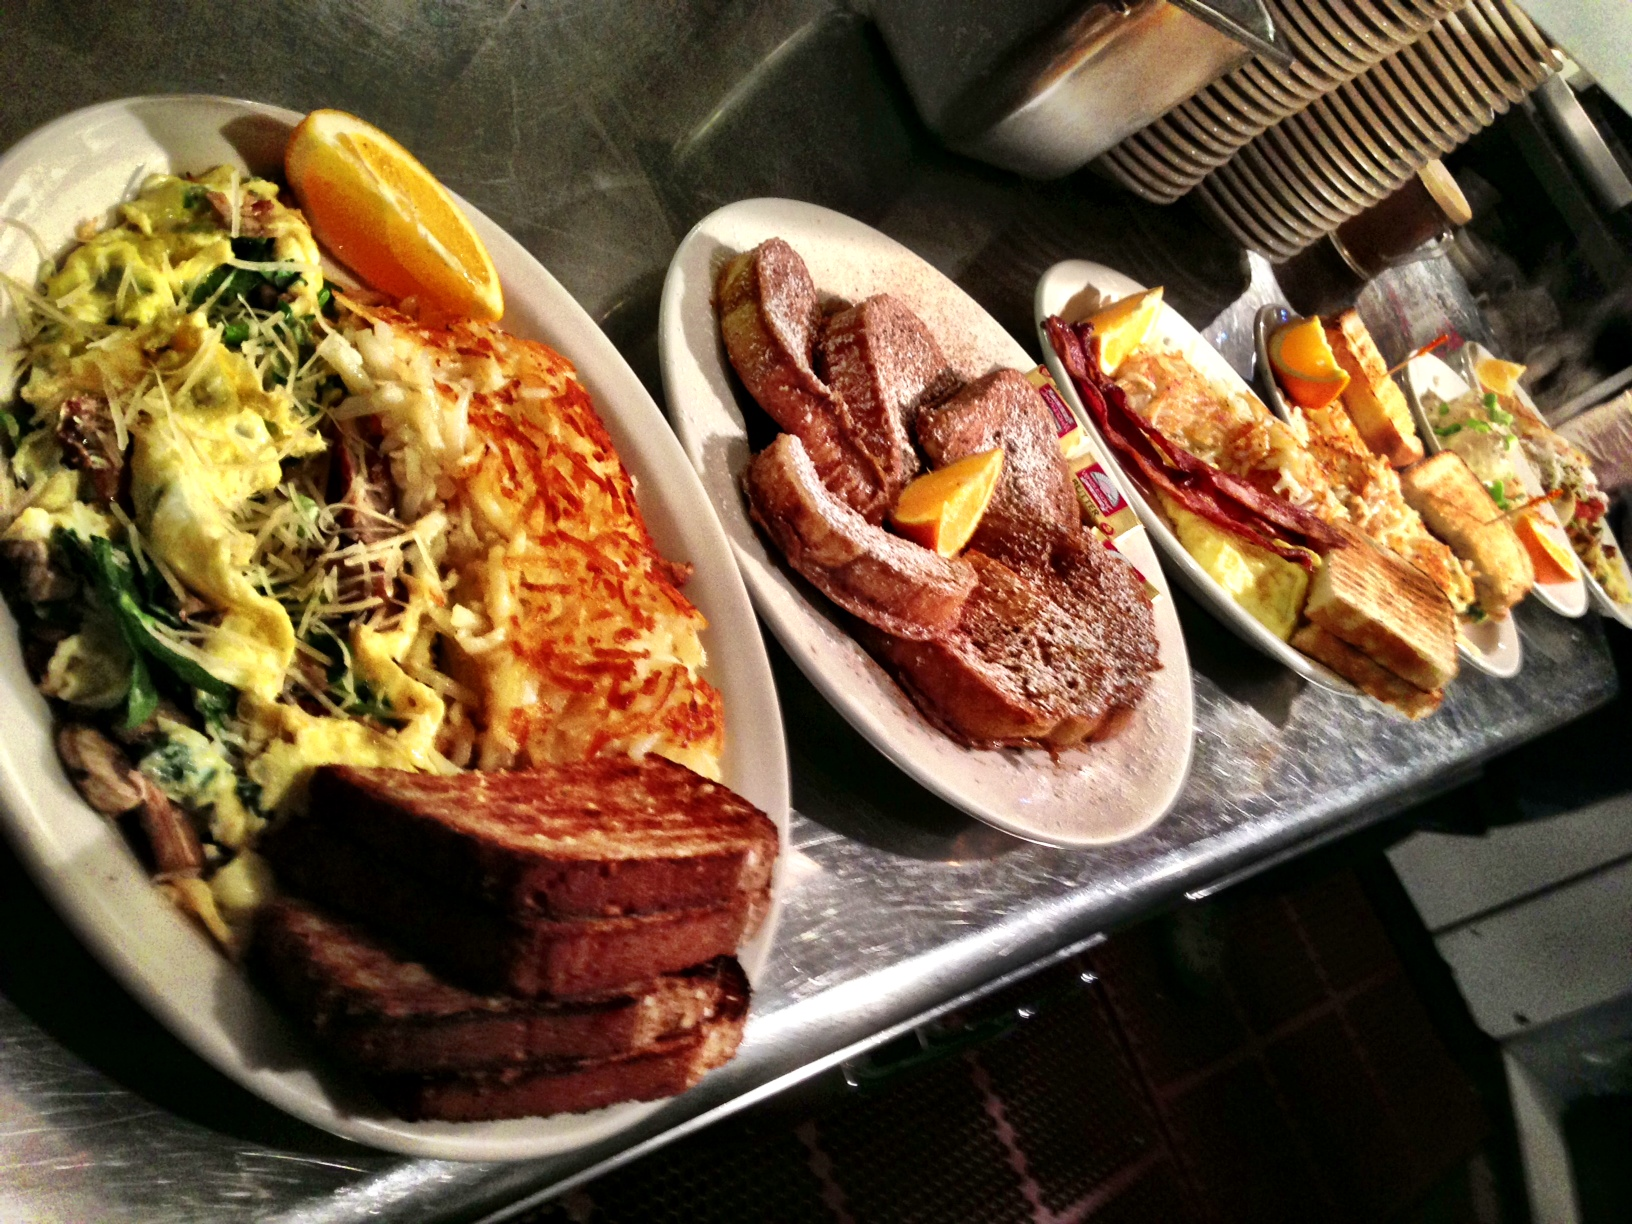 Line 'em up and get some holiday fuel, it's going to be a big day, breakfast first!